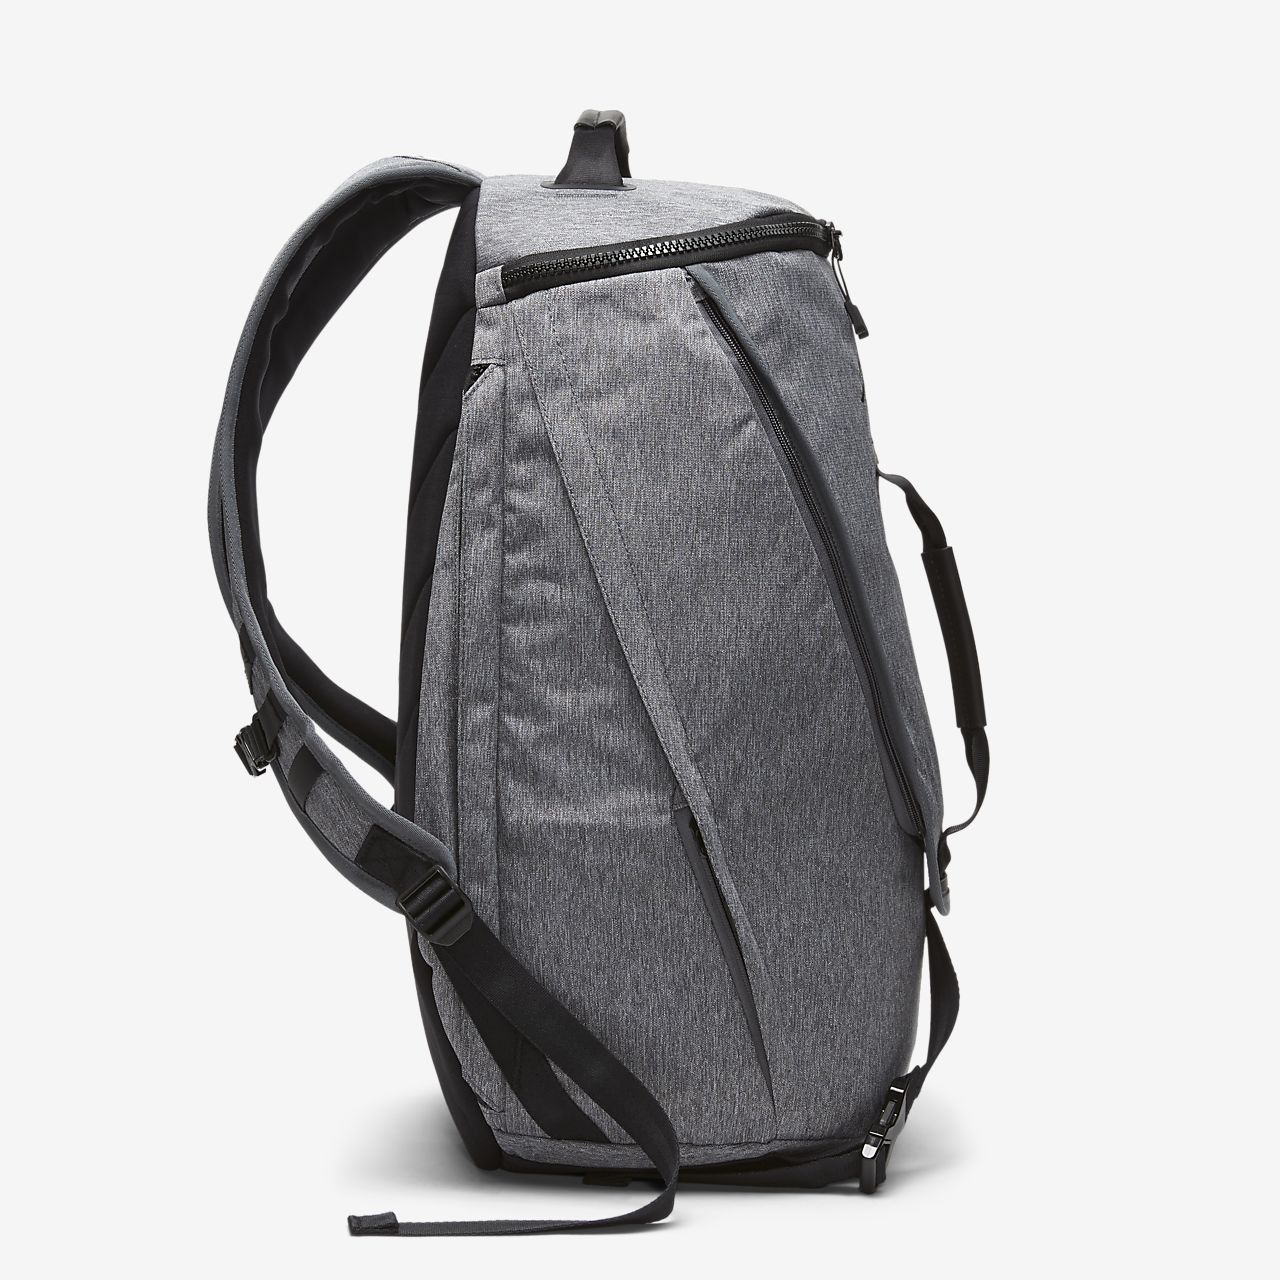 95b7820cbacf jordan takeover backpack cheap   OFF35% The Largest Catalog Discounts